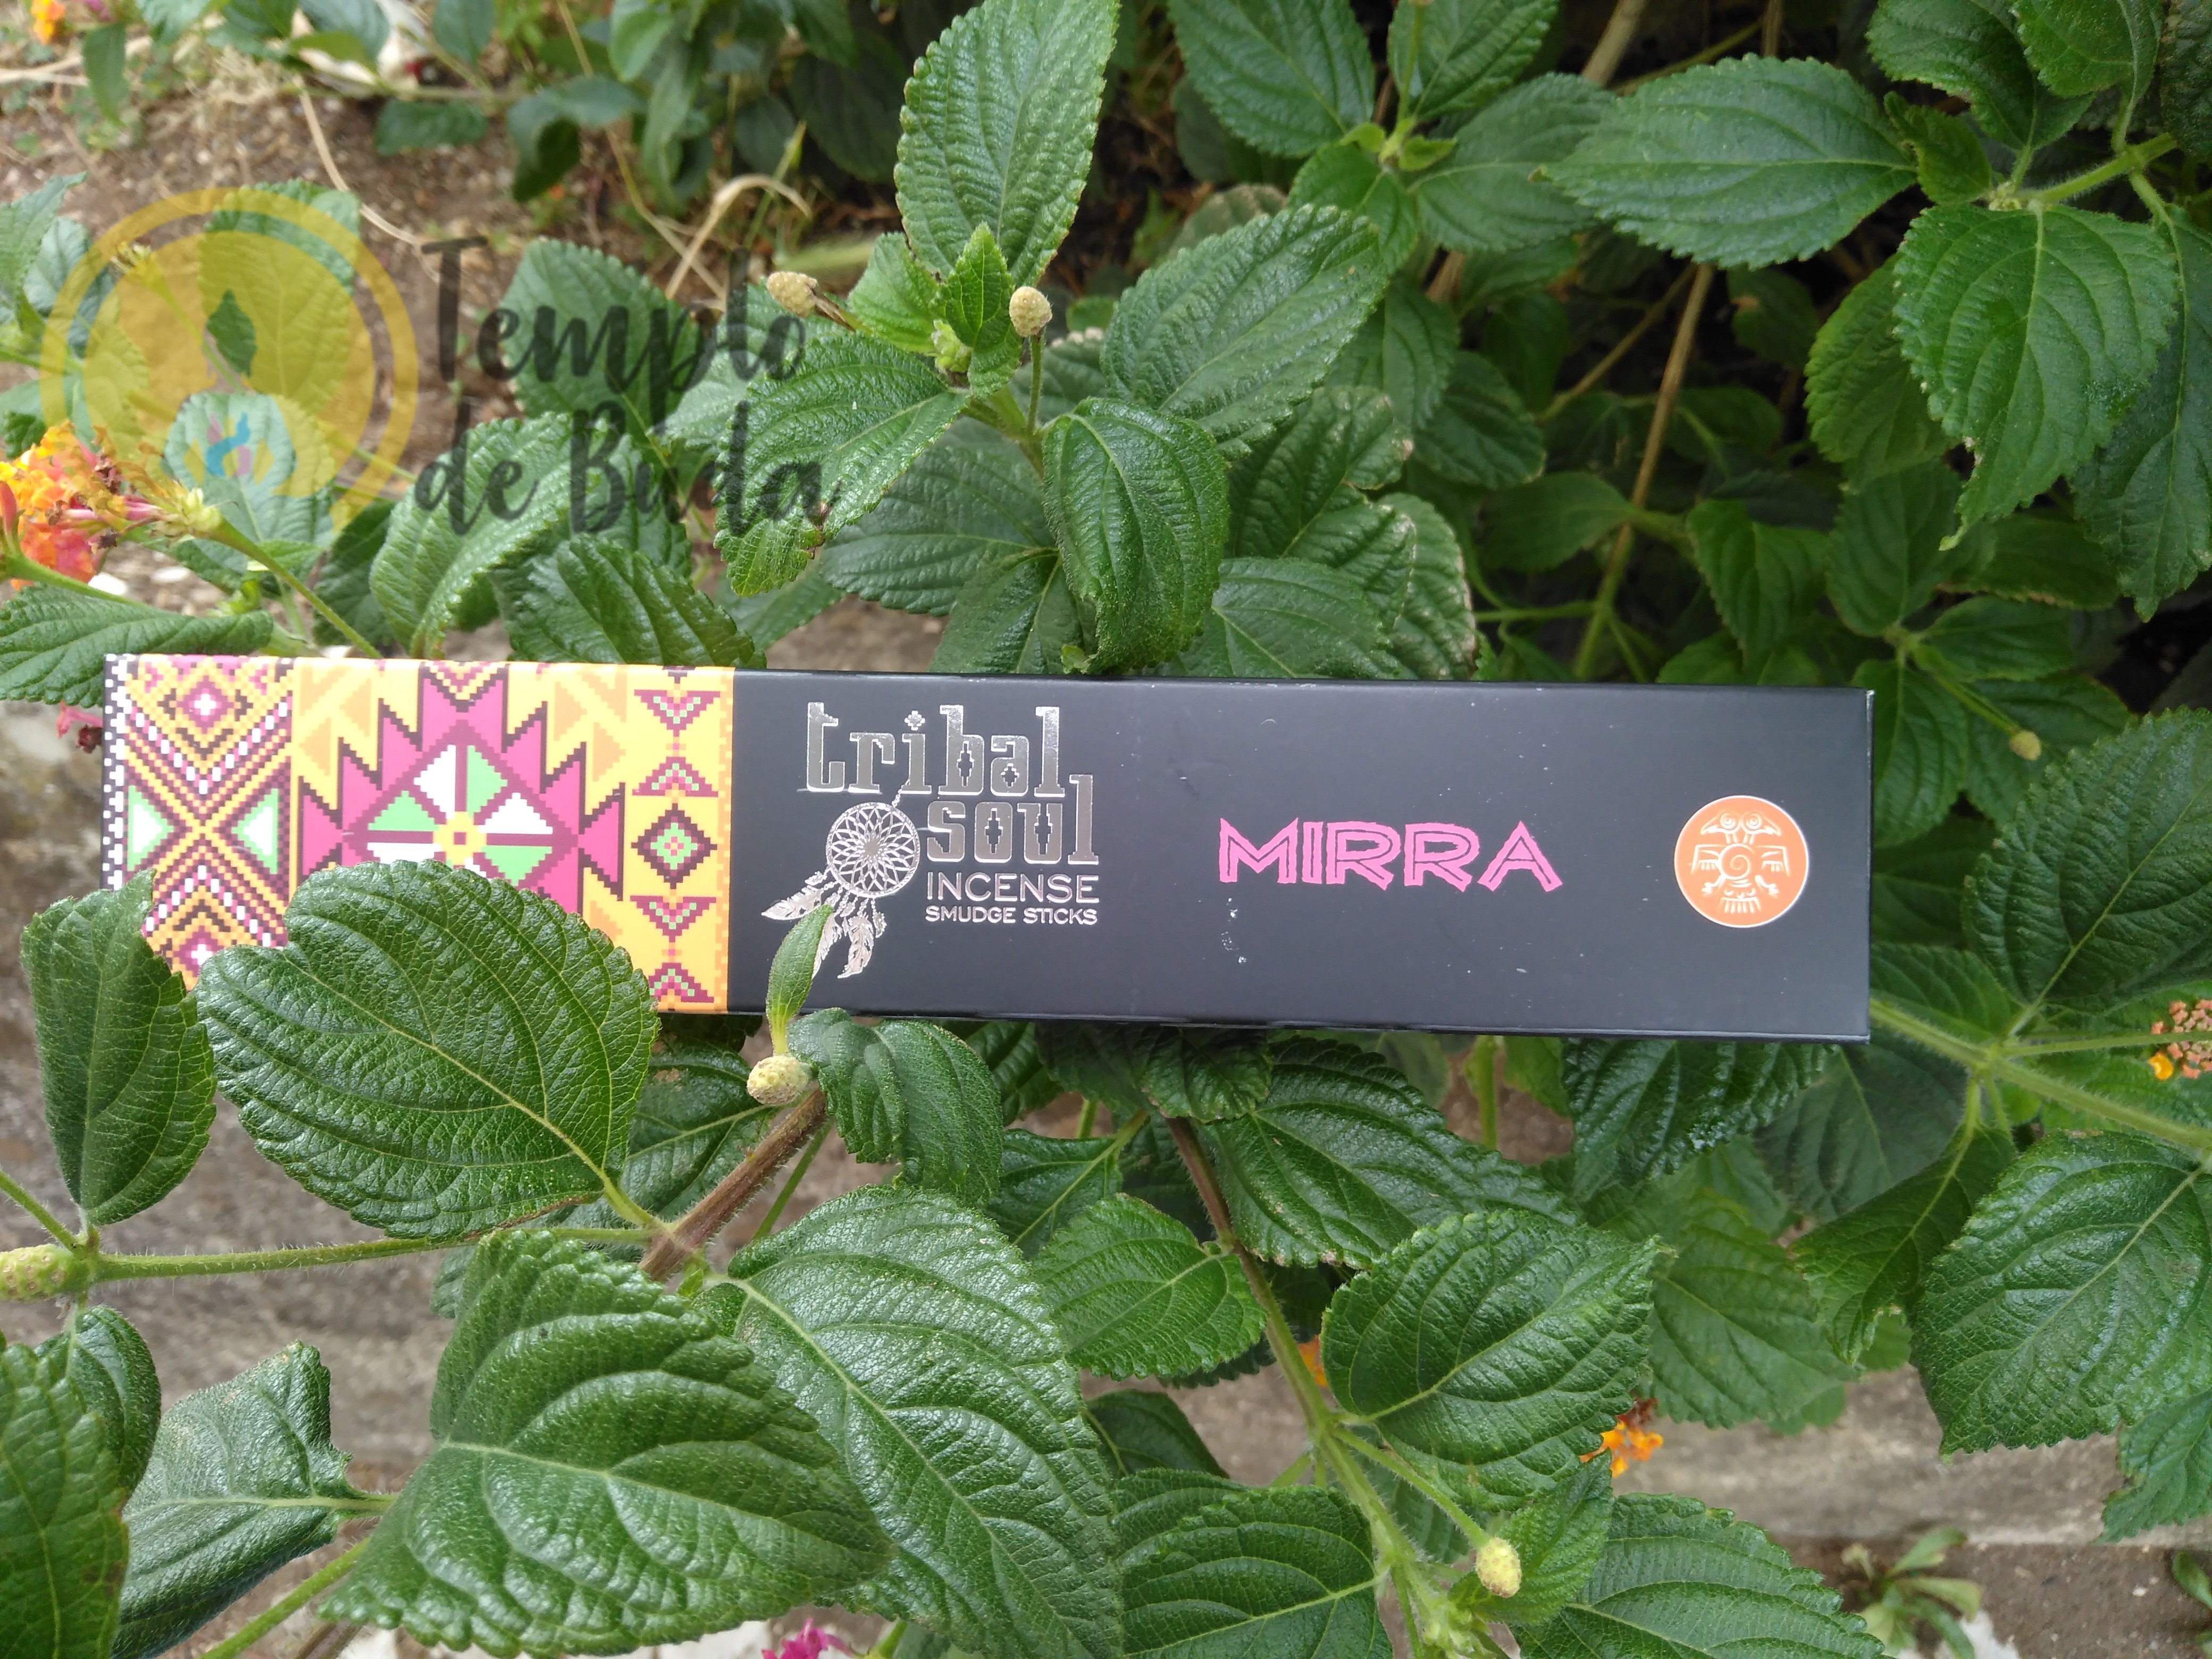 Incenso Indiano Tribal Soul Mirra